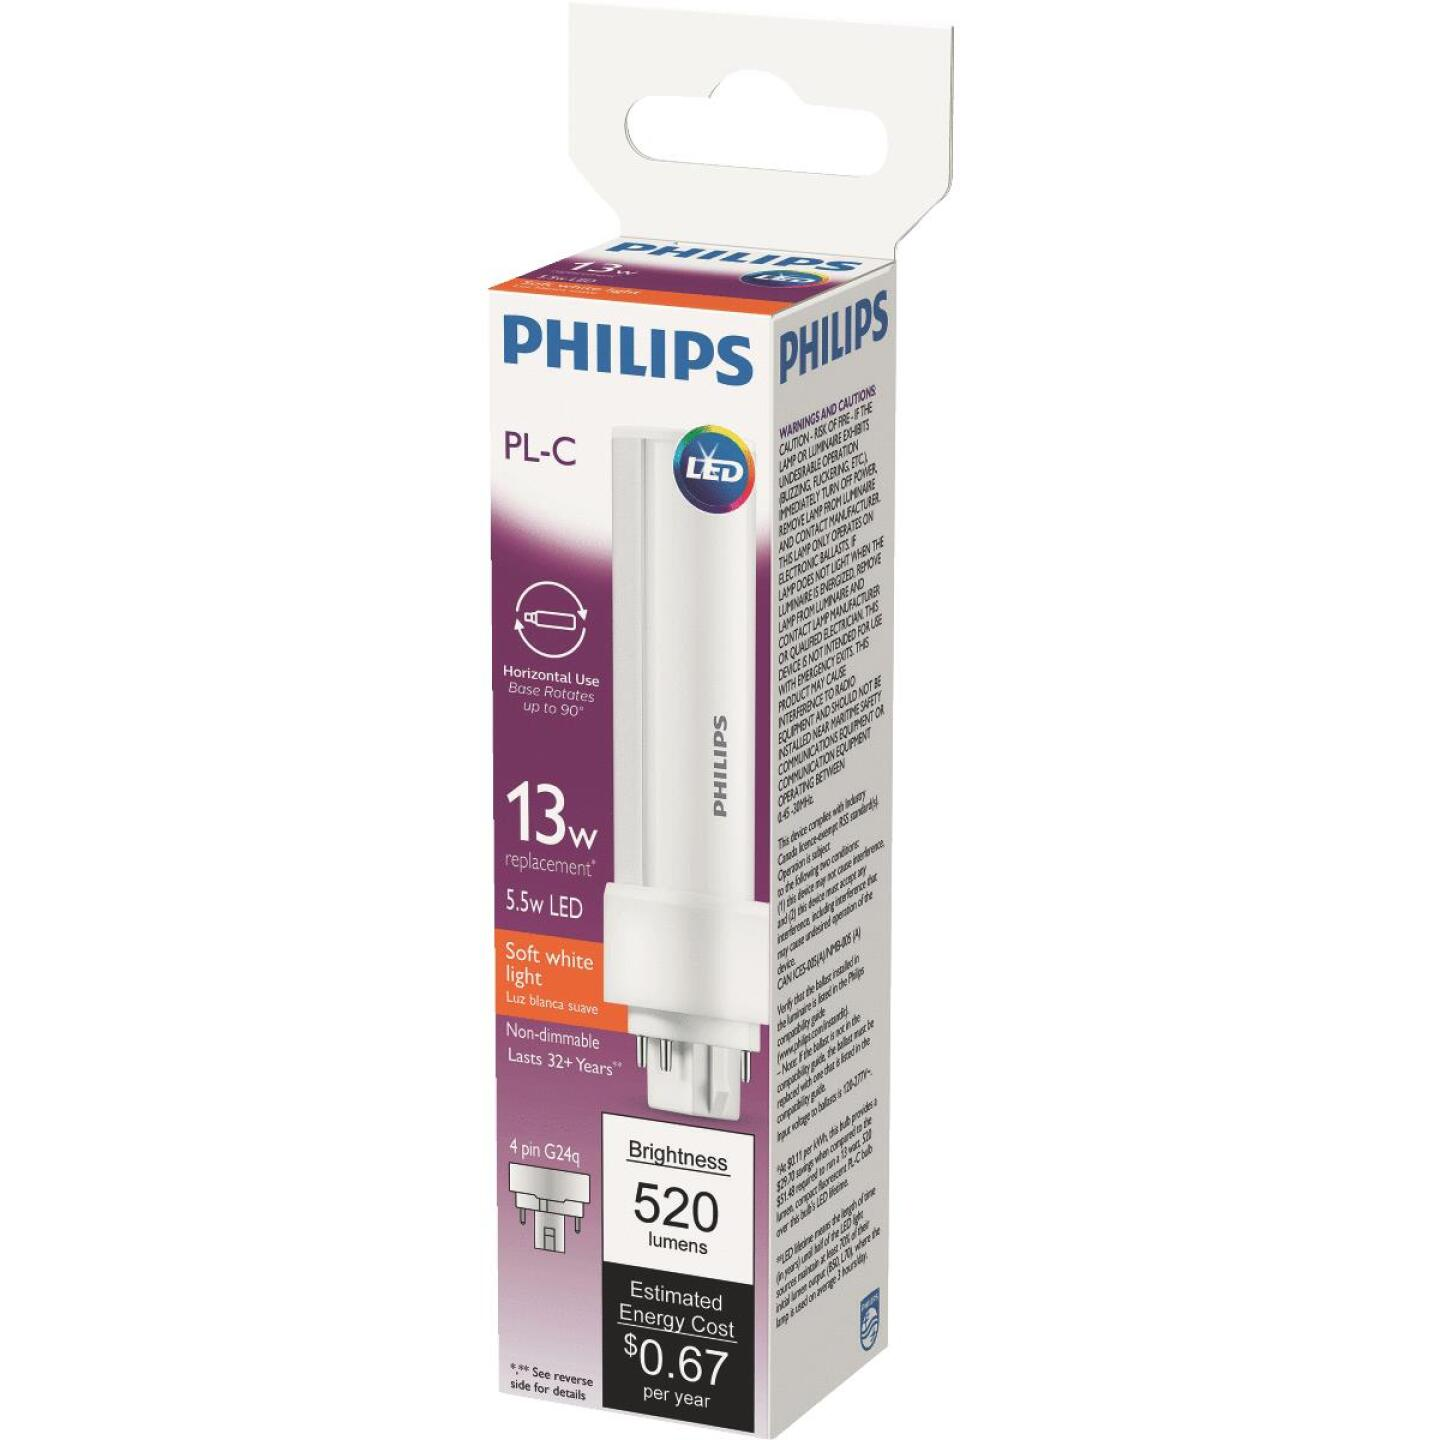 Philips 13W Equivalent Soft White PL-C 4-Pin Horizontal Orientation LED Tube Light Bulb Image 1